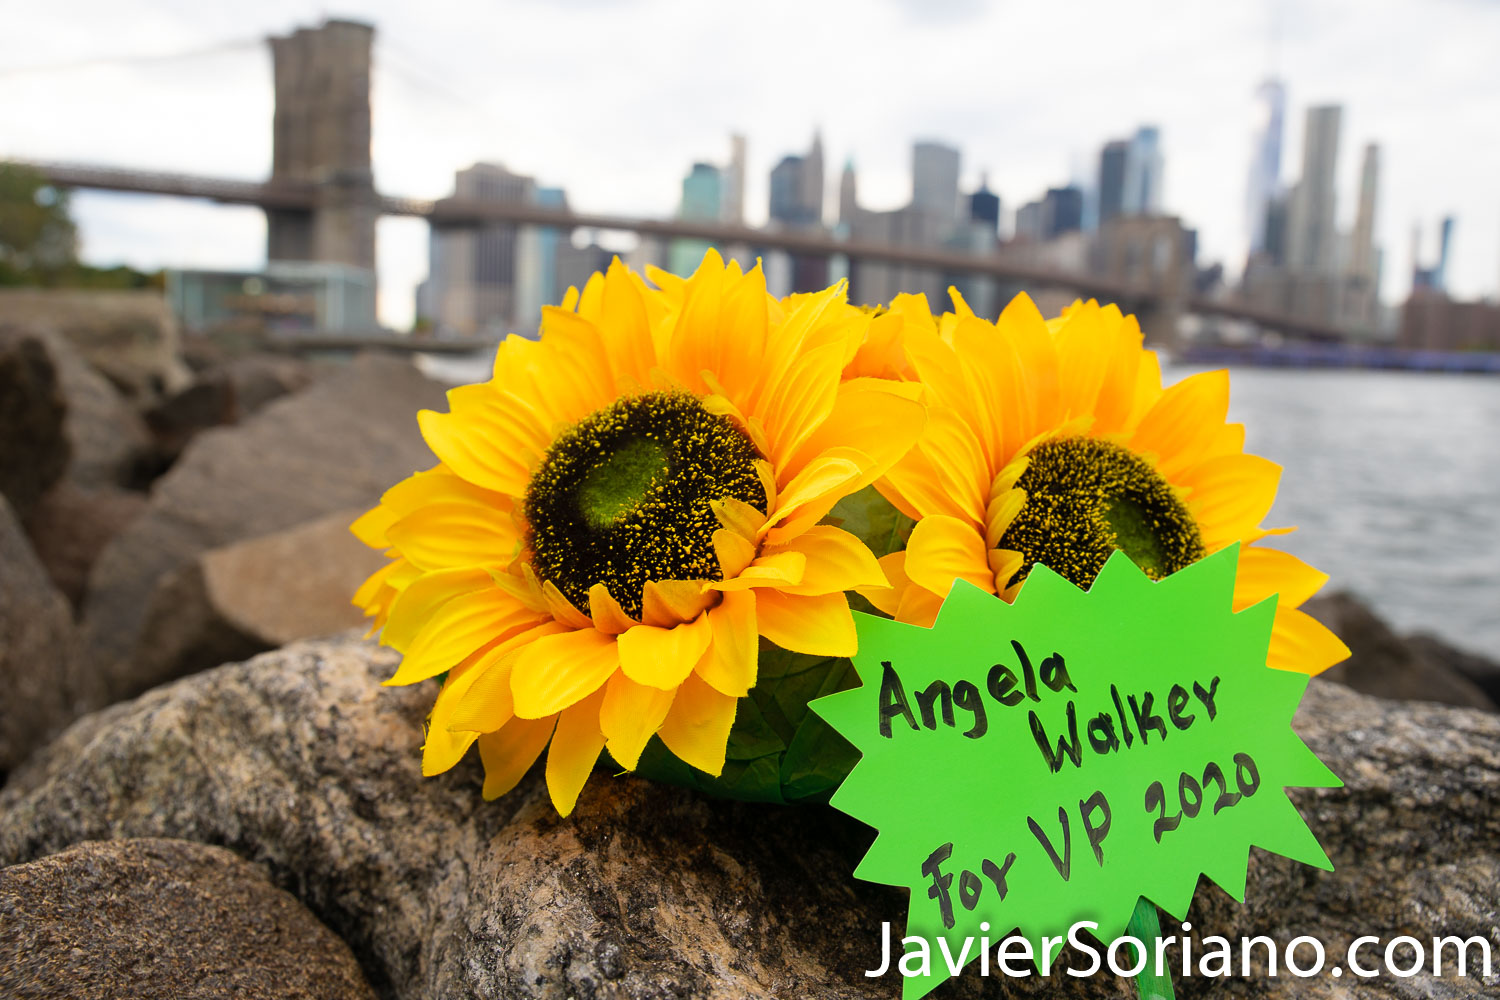 Angela Walker is the Vice President nominee of the Green Party USA in 2020. More info: HowieHawkins.us I took this photo in the Brooklyn Bridge Park, Brooklyn; New York City. Photo by Javier Soriano/www.JavierSoriano.com